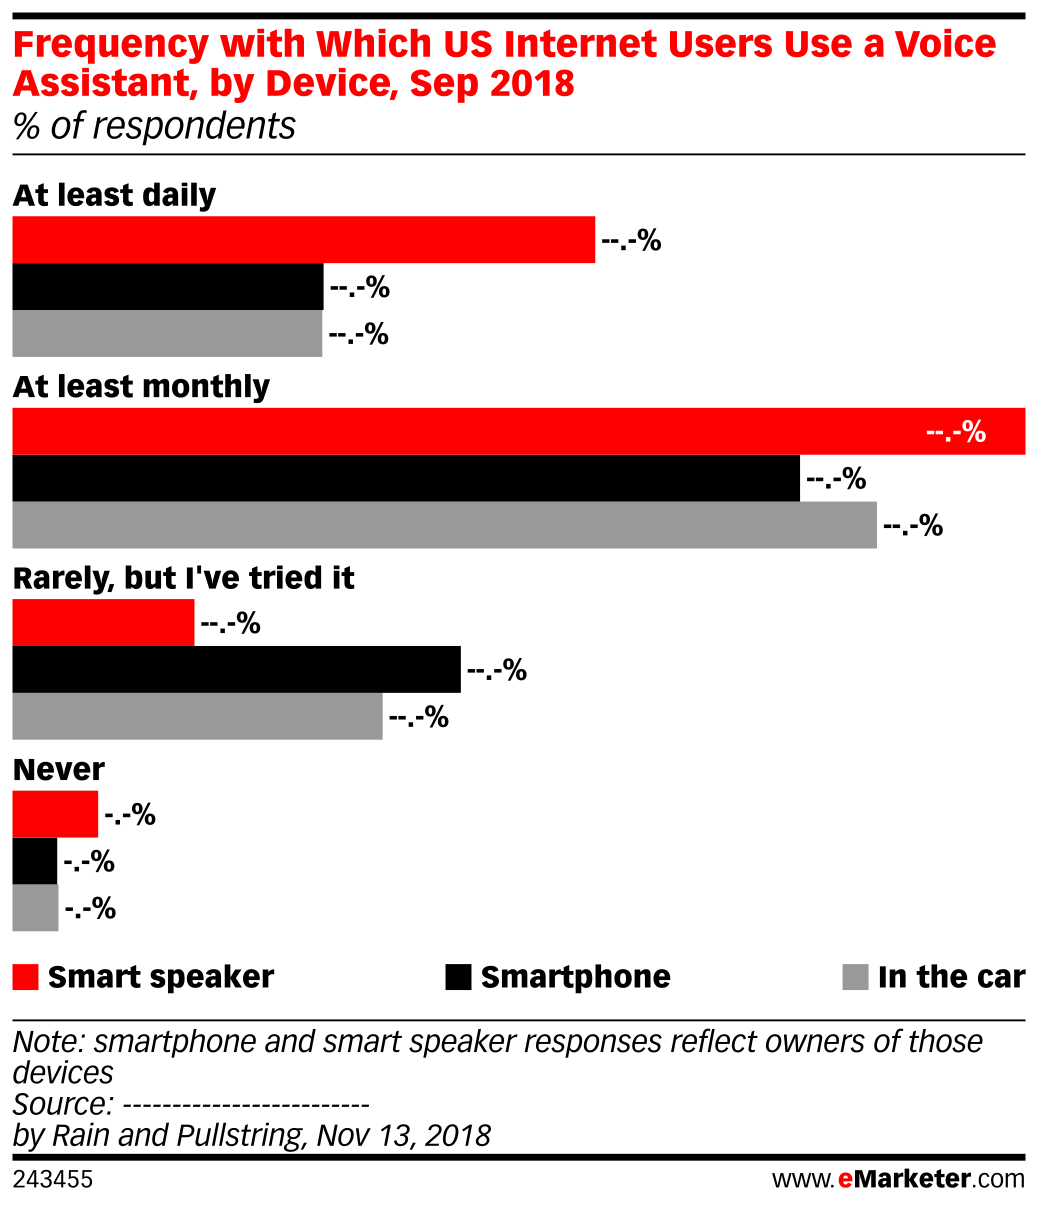 Frequency with Which US Internet Users Use a Voice Assistant, By Device, Sep 2018 (% of respondents)